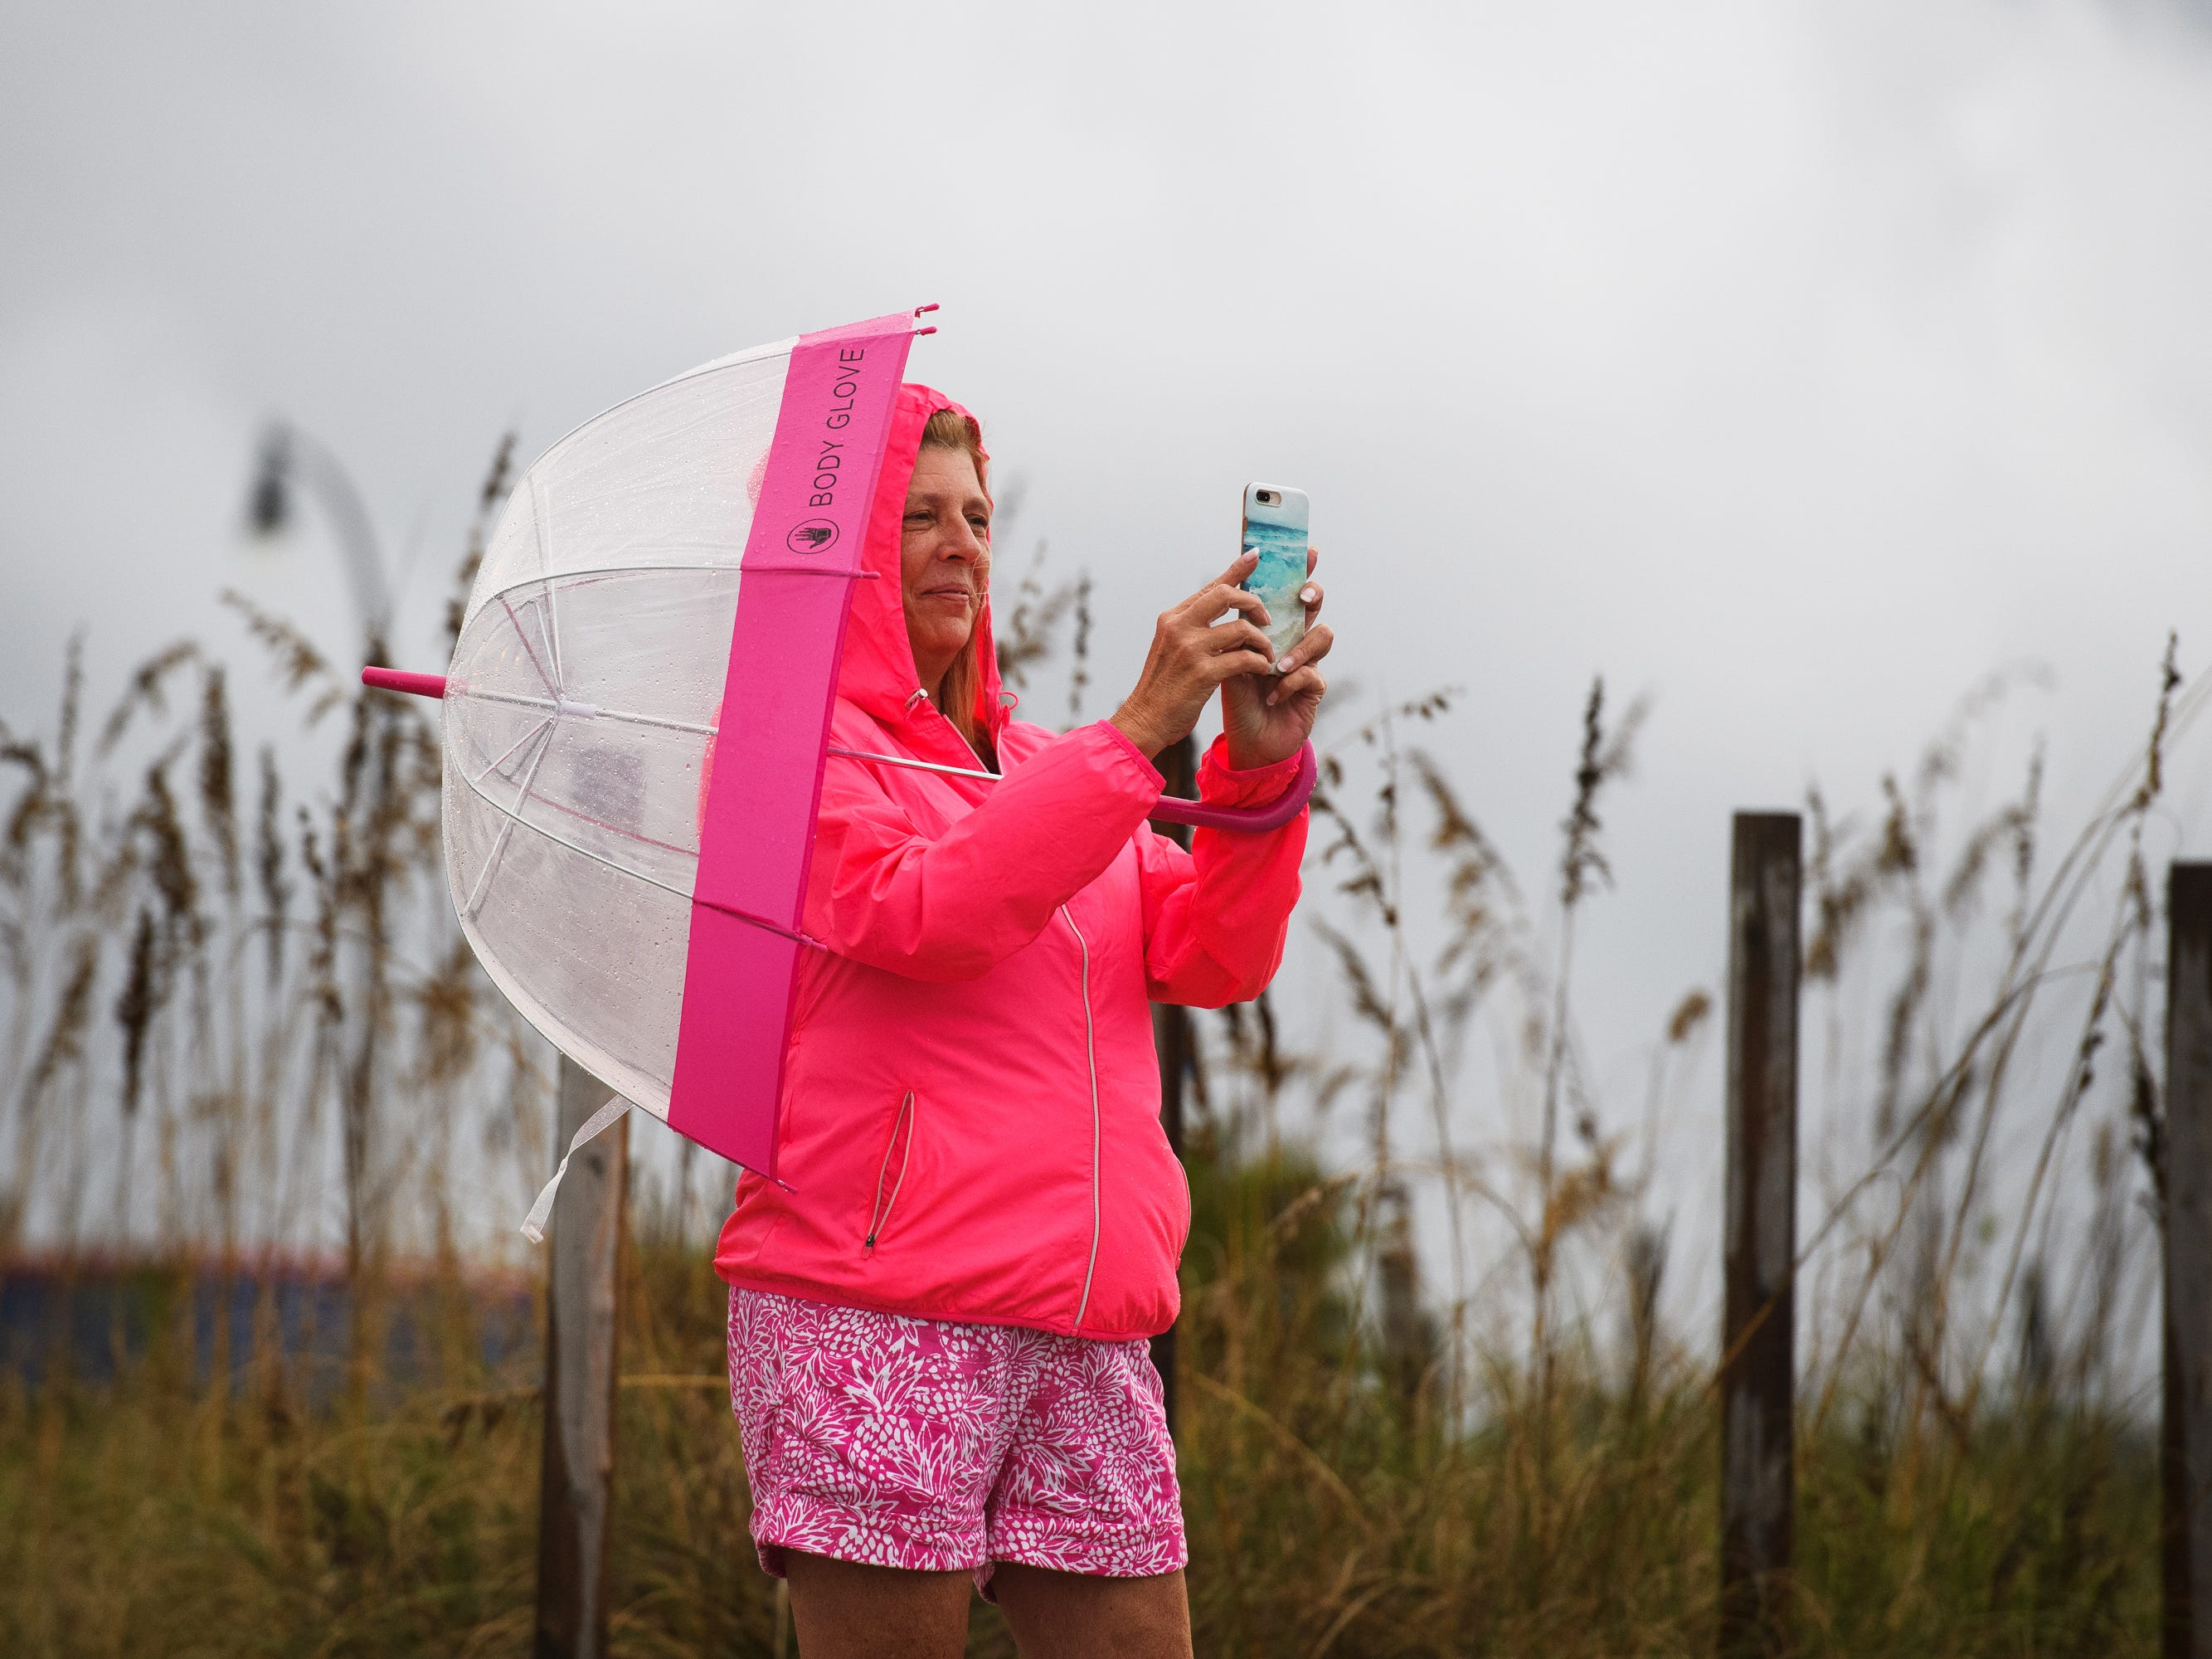 Karen Glass takes photos of the the shore at Cherry Grove Beach, S.C. after the first rain from an outer band of Hurricane Florence hits the area on Sept. 13, 2018. (